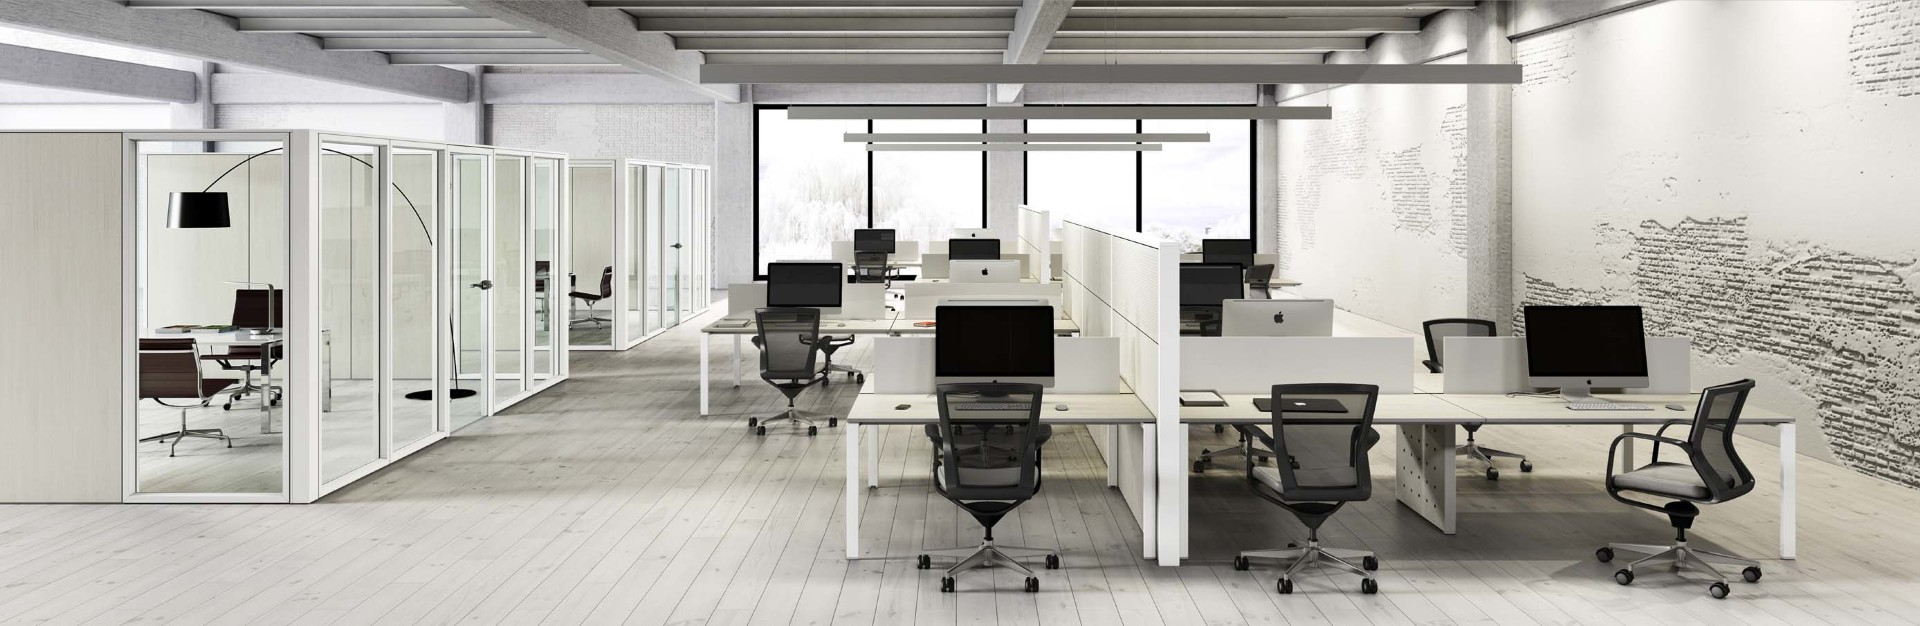 tecna-open-panel-bench-system-open-space-partition-02.jpg